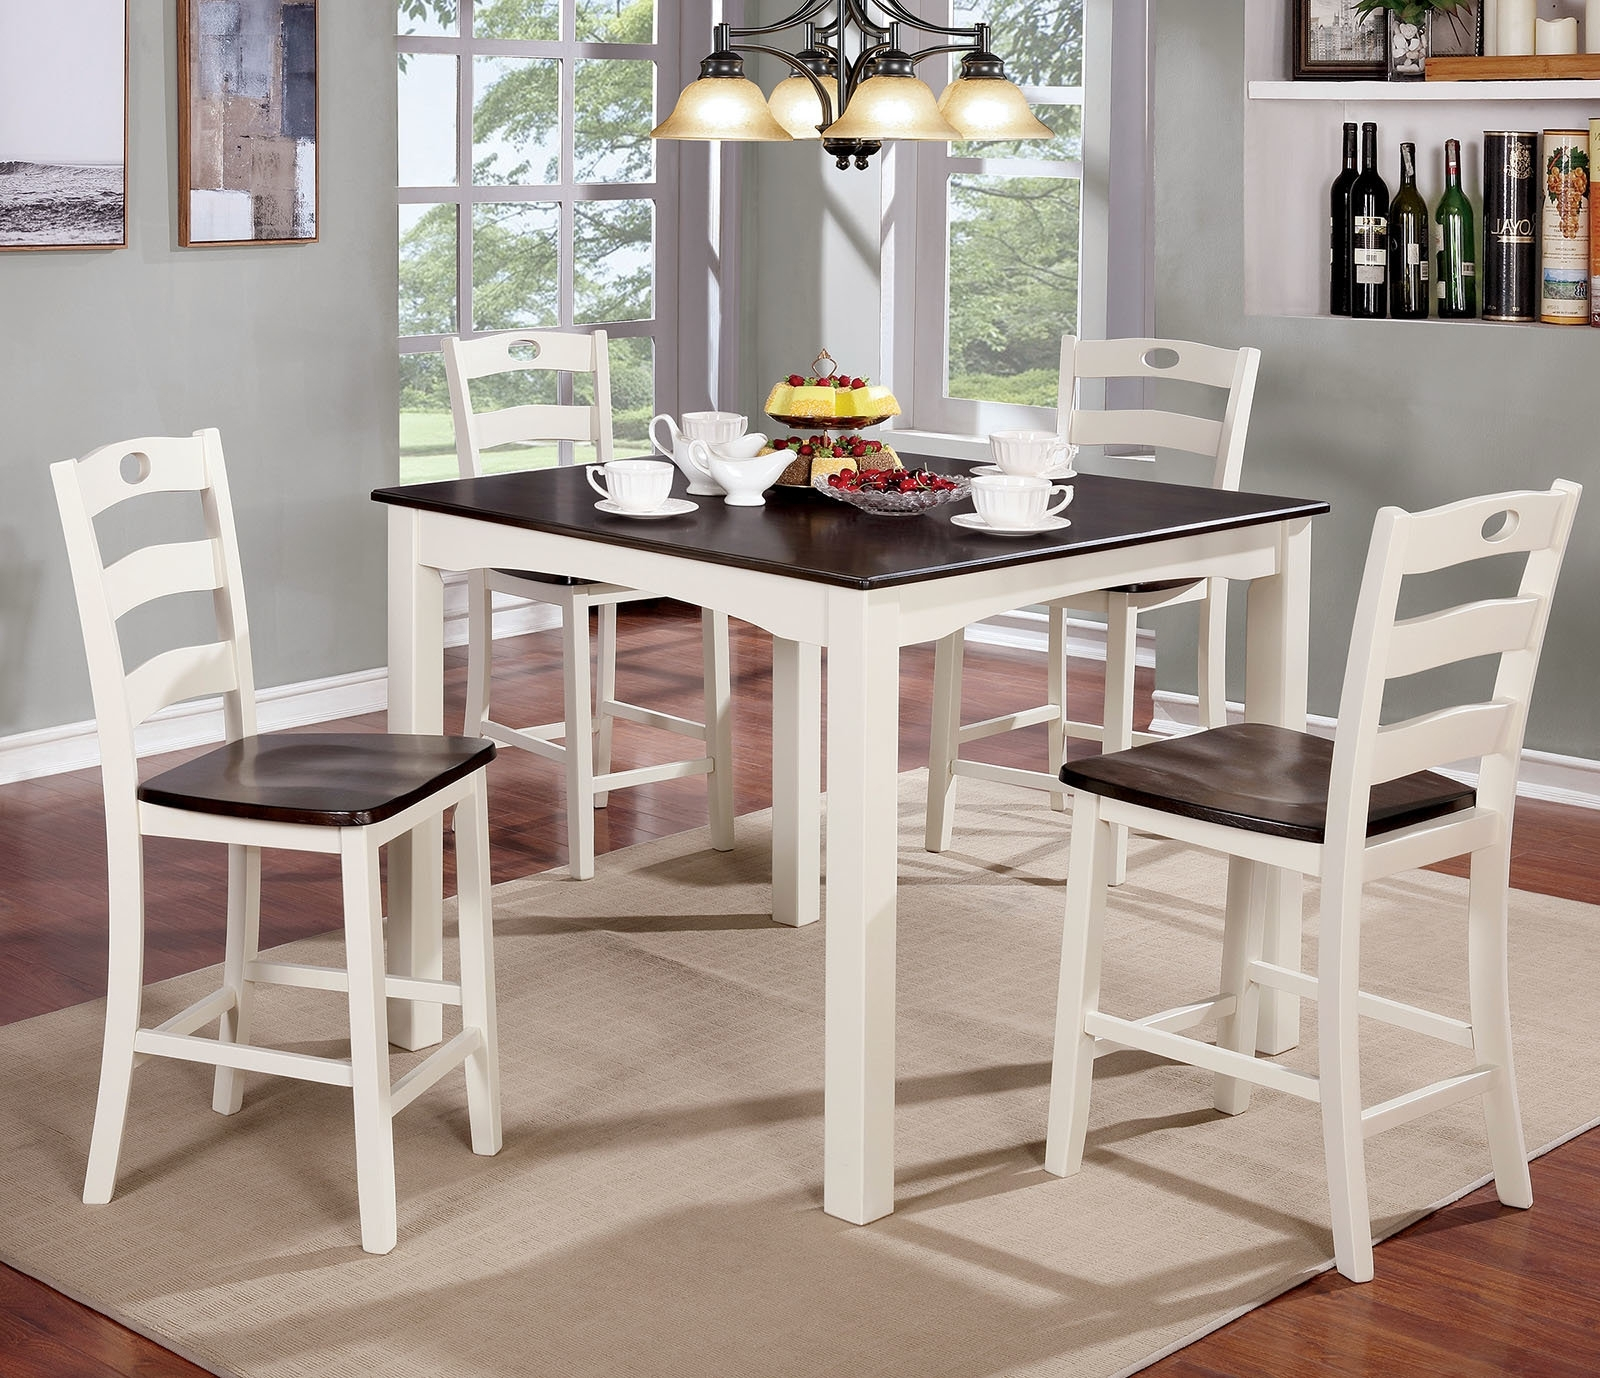 Most Recent Red Barrel Studio Harkins Wooden 5 Piece Counter Height Dining Table For Candice Ii 5 Piece Round Dining Sets (Gallery 13 of 25)